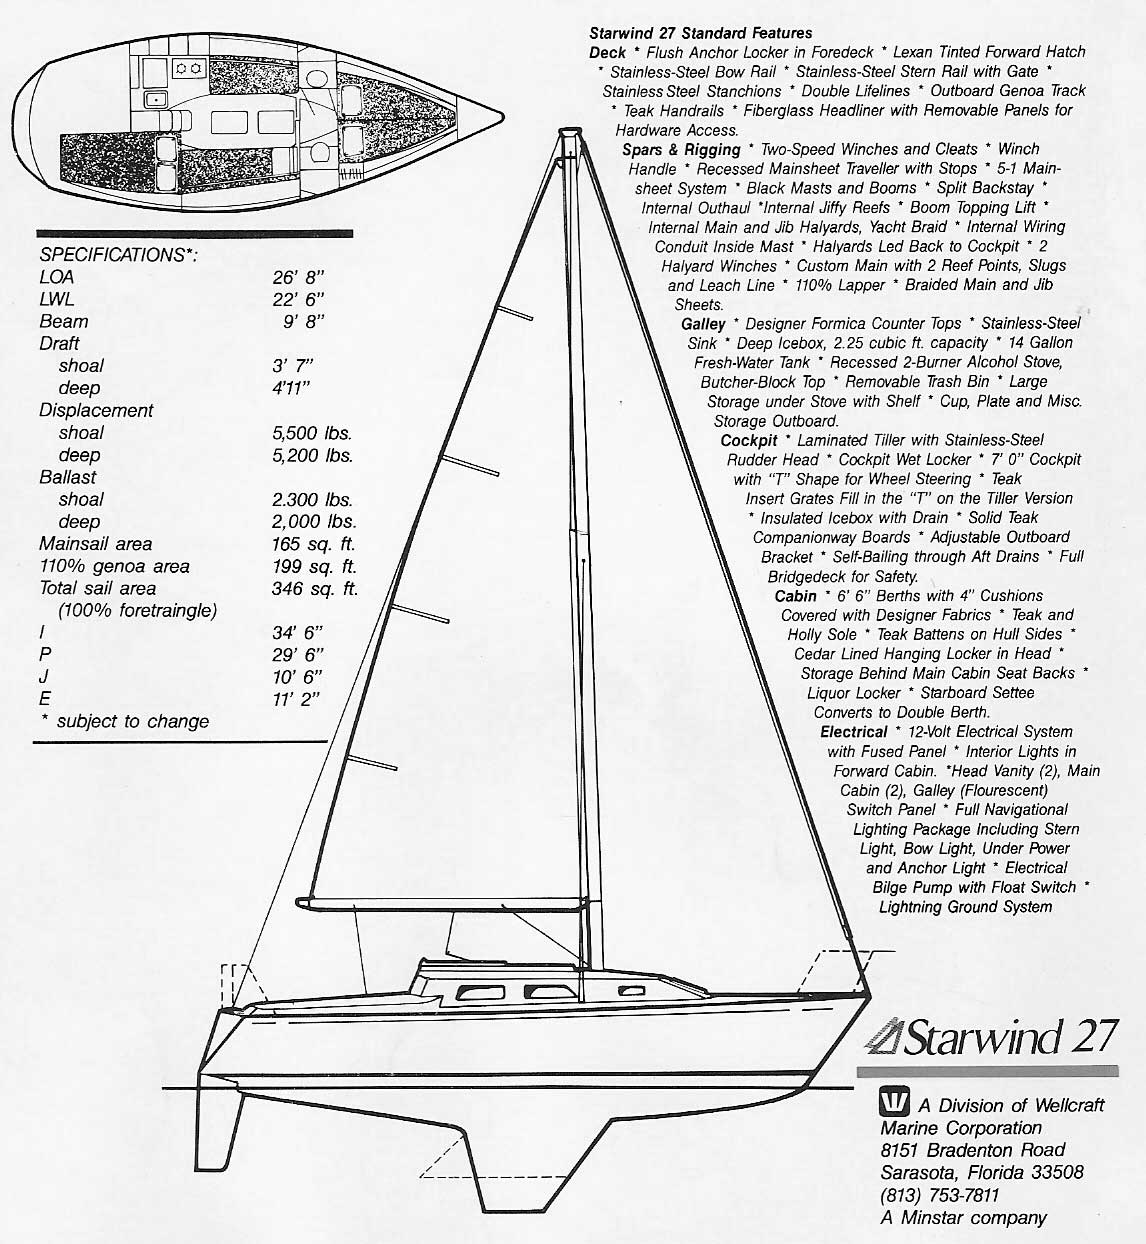 Starwind 27 Sailboat Photo Gallery